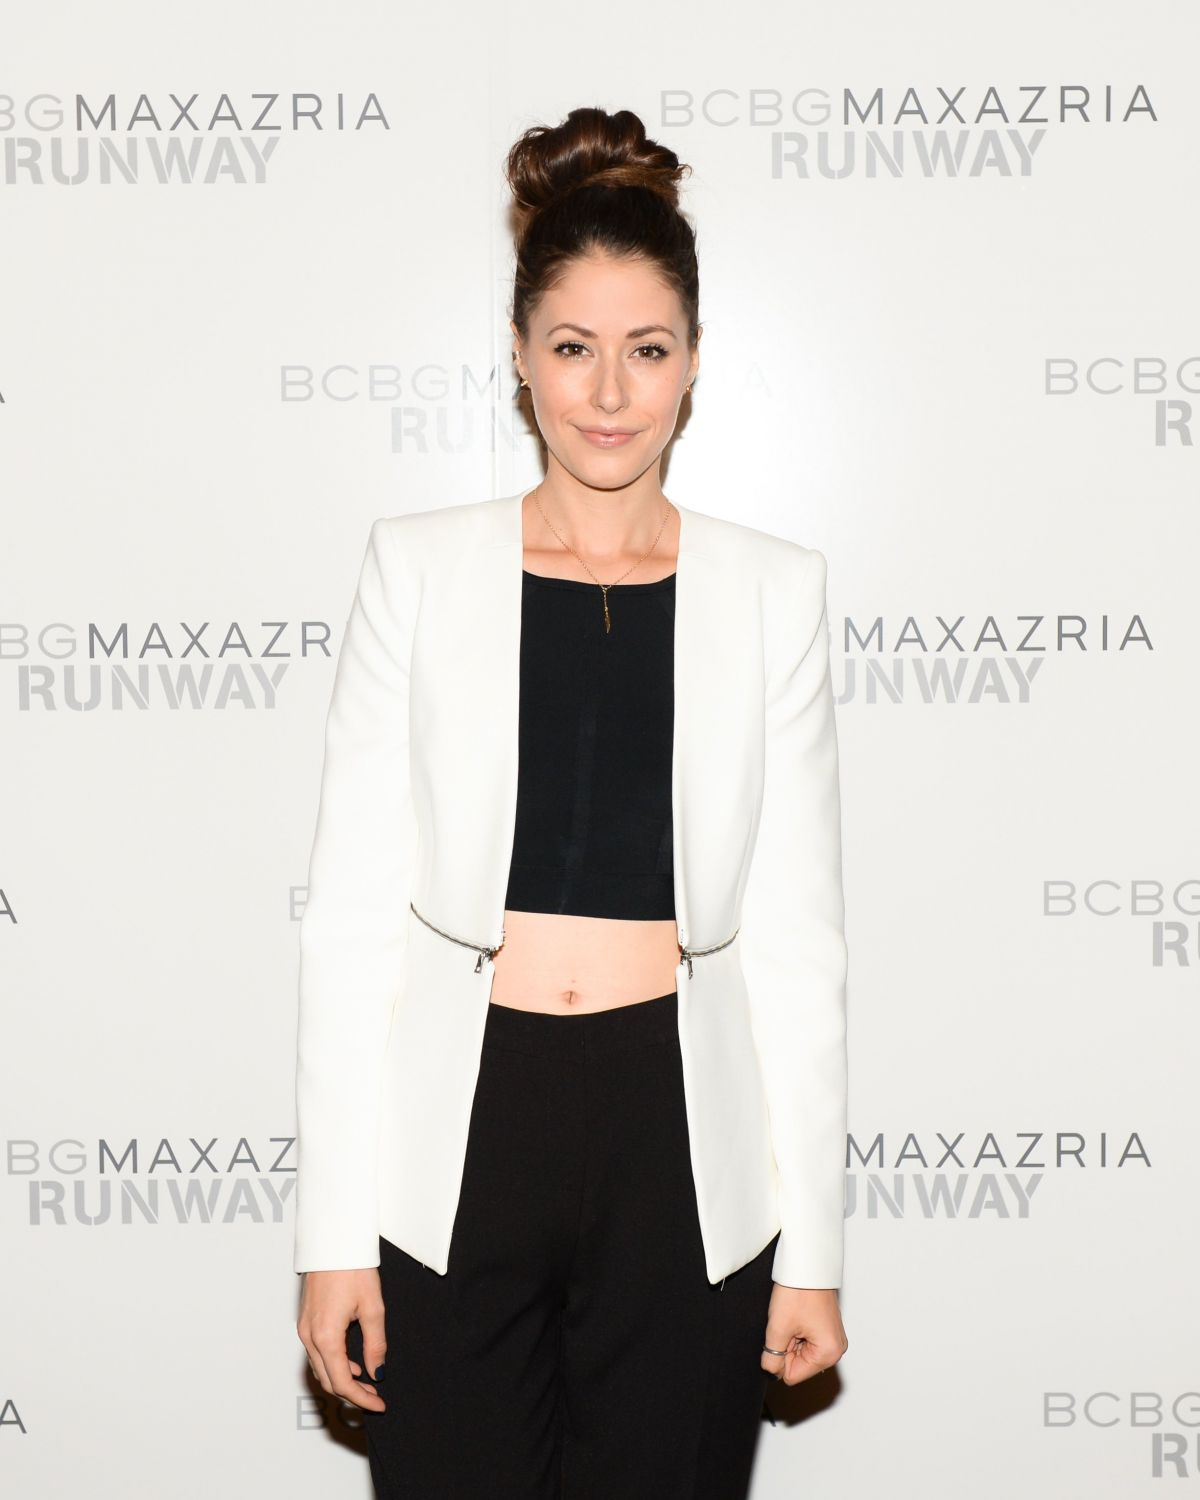 AMANDA CREW at Bcbgmaxazria Fashion Show in New York